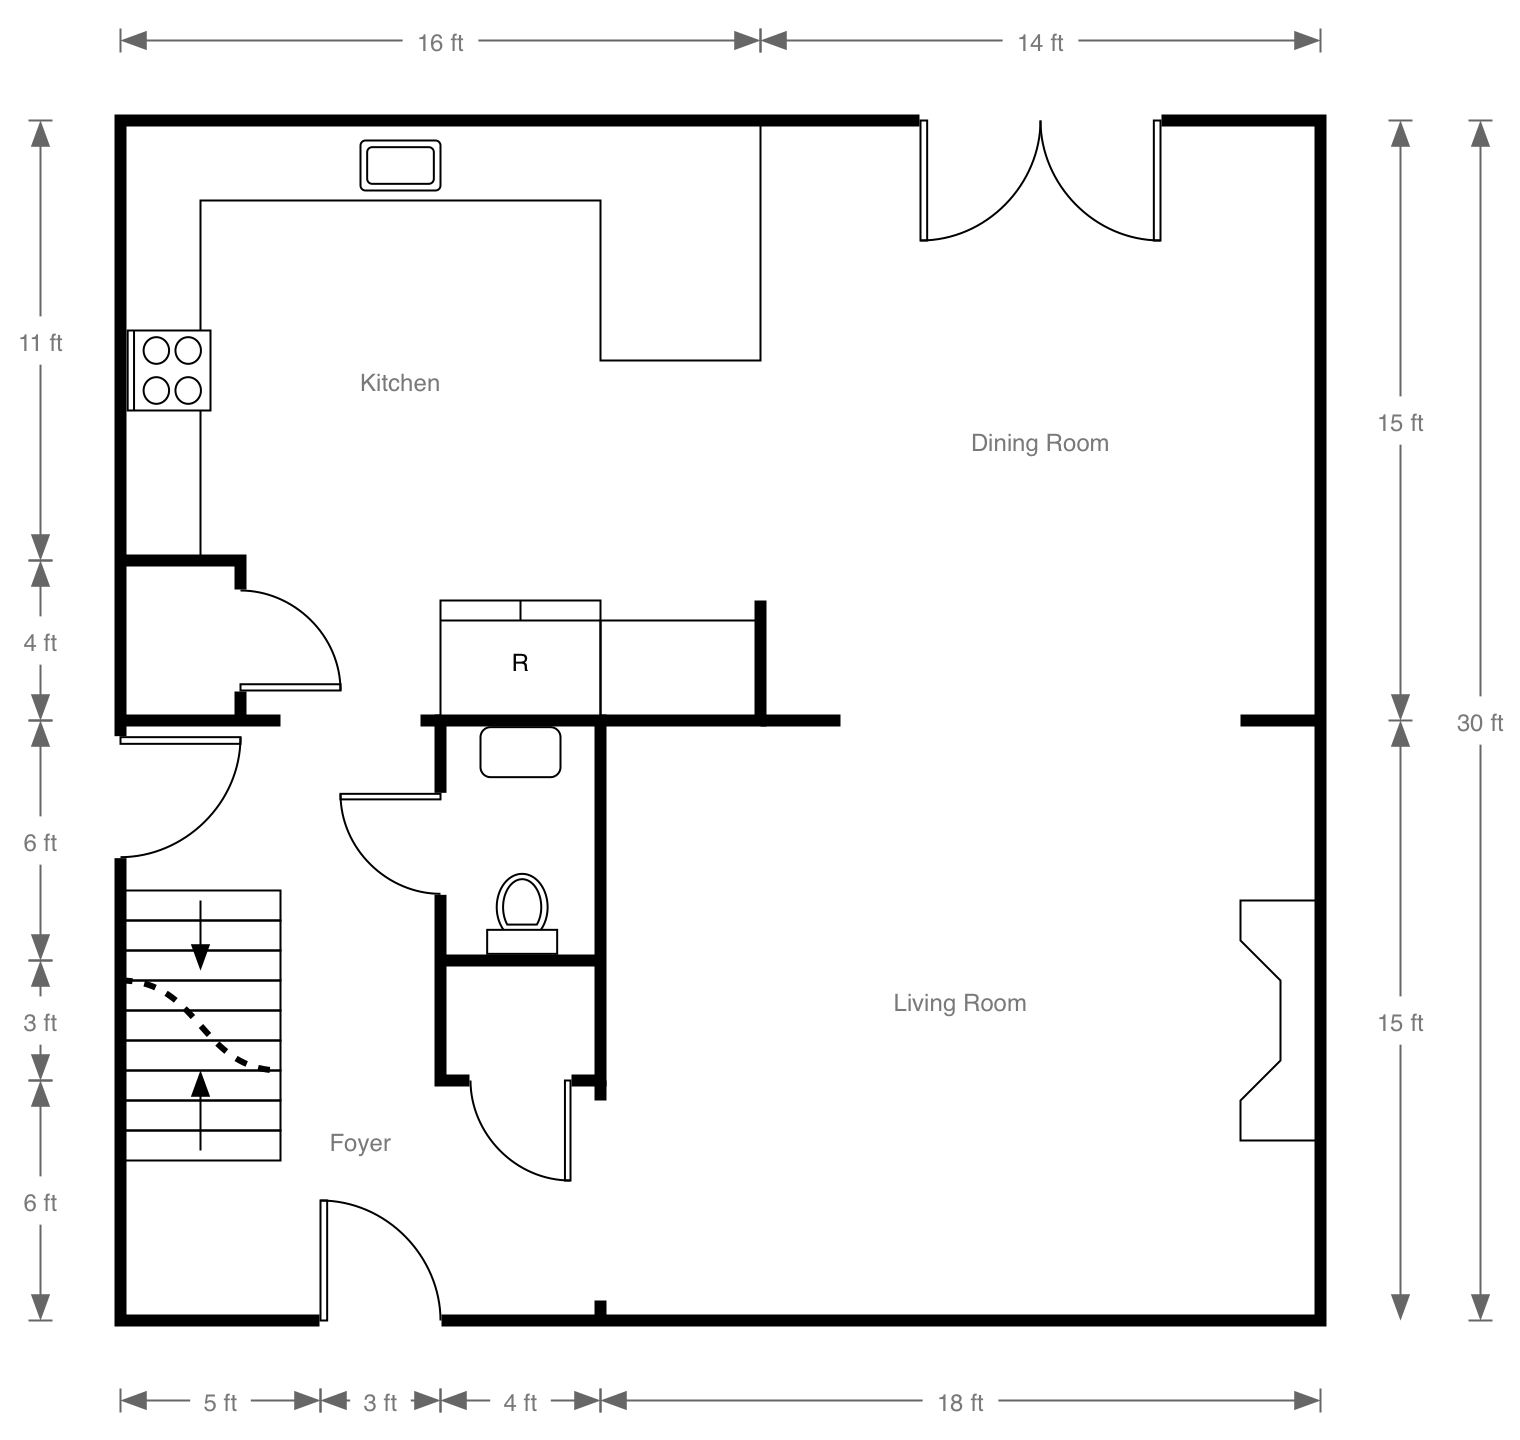 Kids math teacher math activities with walls for Create floor plans online for free